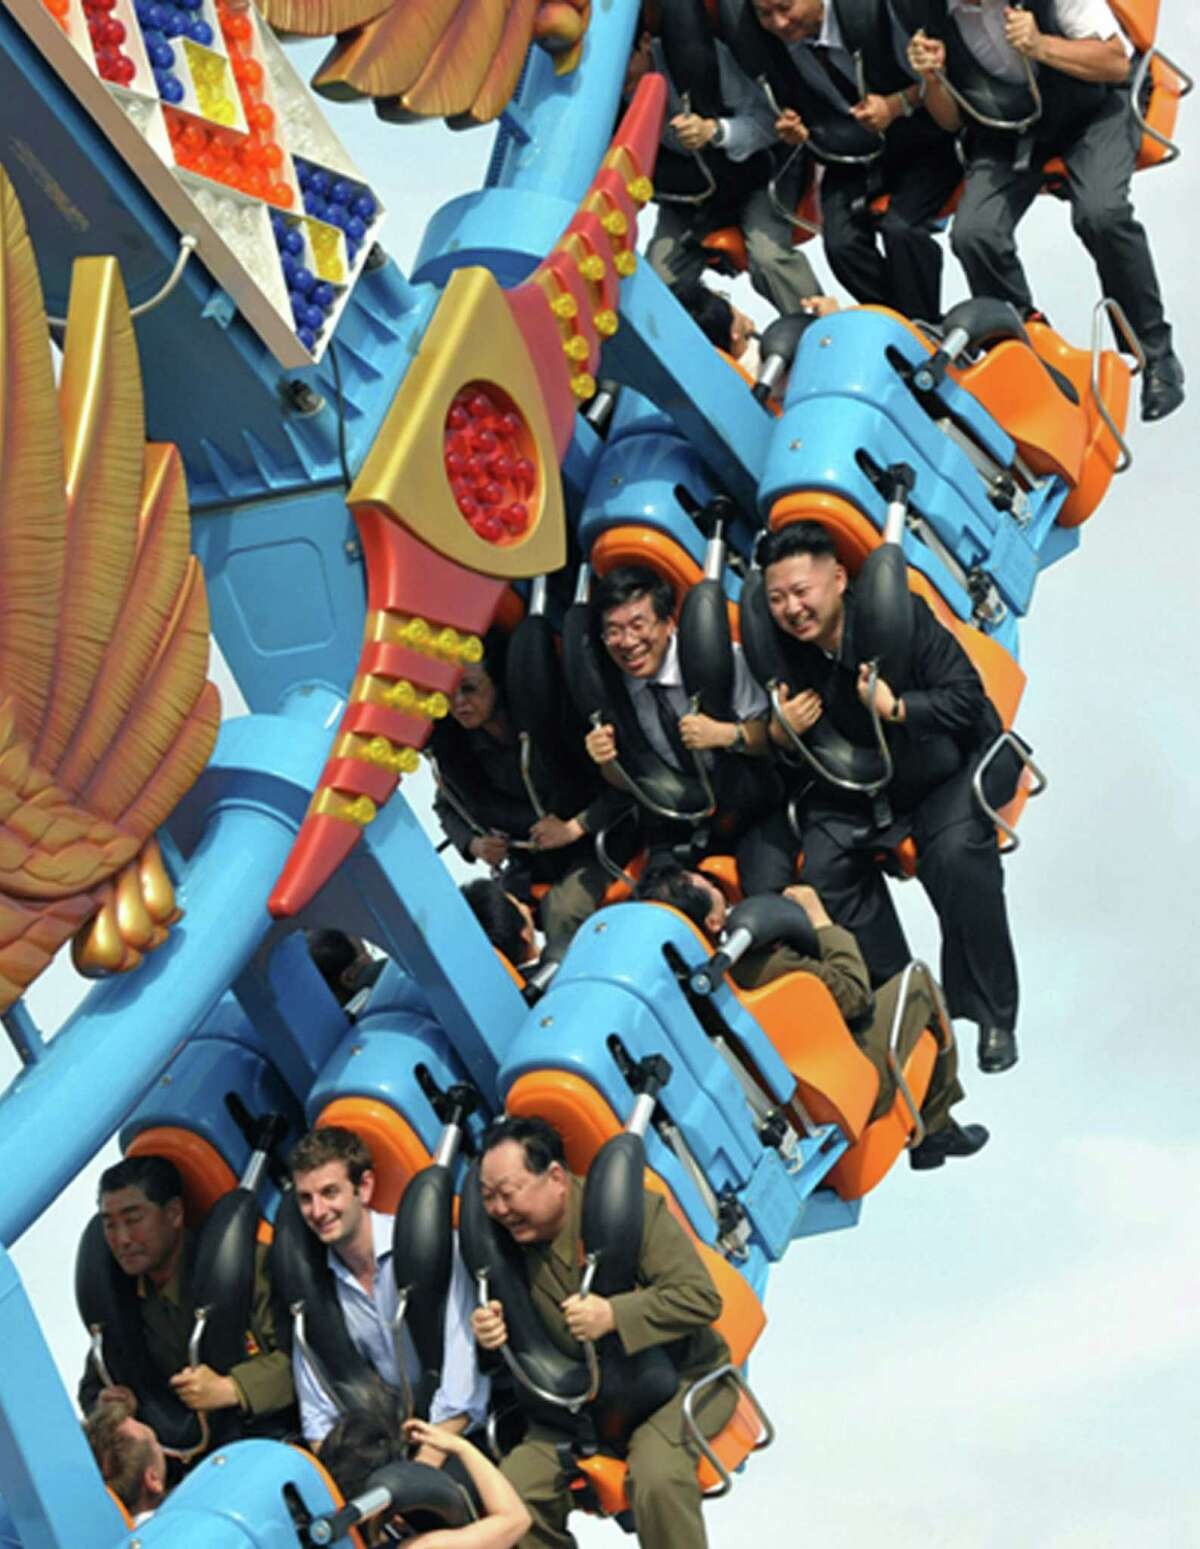 FILE - In this Wednesday, July 25, 2012 file photo released by the Korean Central News Agency and distributed in Tokyo by the Korea News Service Friday, July 27, 2012, North Korean leader Kim Jong Un, right in the middle, reacts as he takes a ride of an amusement attraction with Barnaby Jones, the first secretary and charges d?'affaires at the British Embassy, second from left in bottom, during the completion ceremony of the Rungna People's Pleasure Ground in Pyongyang, North Korea. Foreign diplomats and officials were among those invited to attend the ceremony. (AP Photo/Korean Central News Agency via Korea News Service, File) JAPAN OUT UNTIL 14 DAYS AFTER THE DAY OF TRANSMISSION